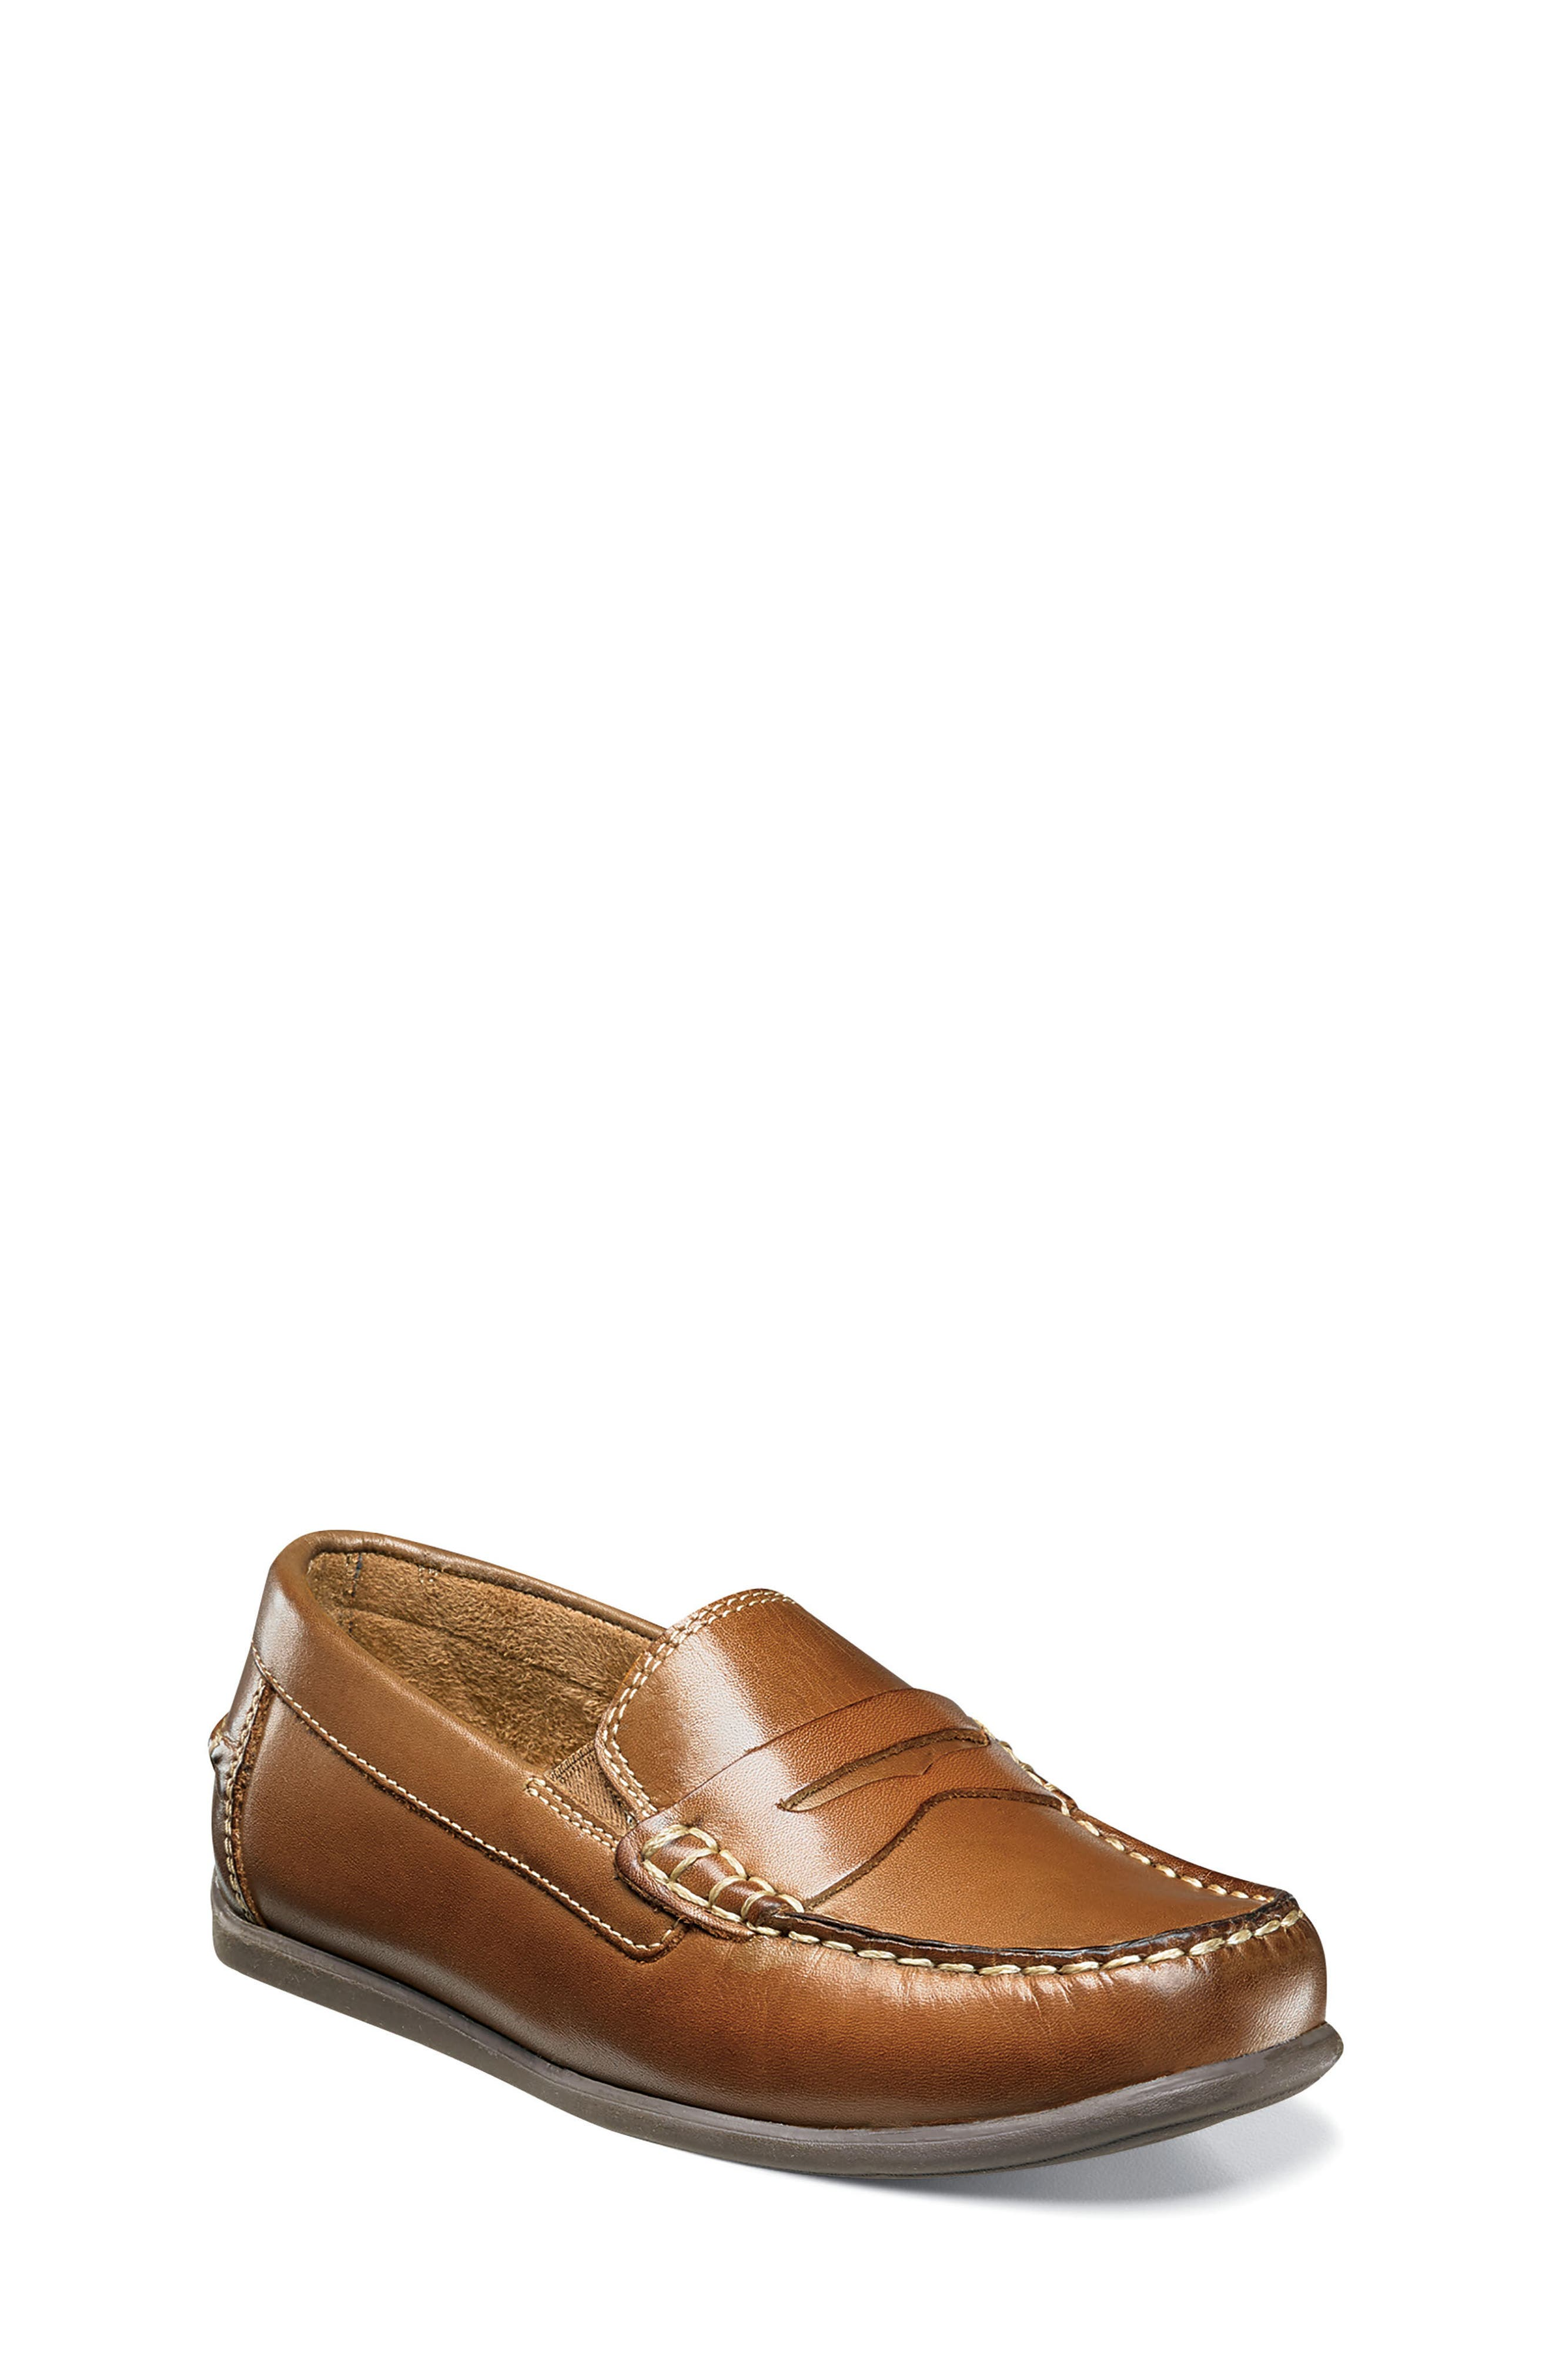 'Jasper - Driver Jr.' Loafer,                         Main,                         color, Saddle Tan